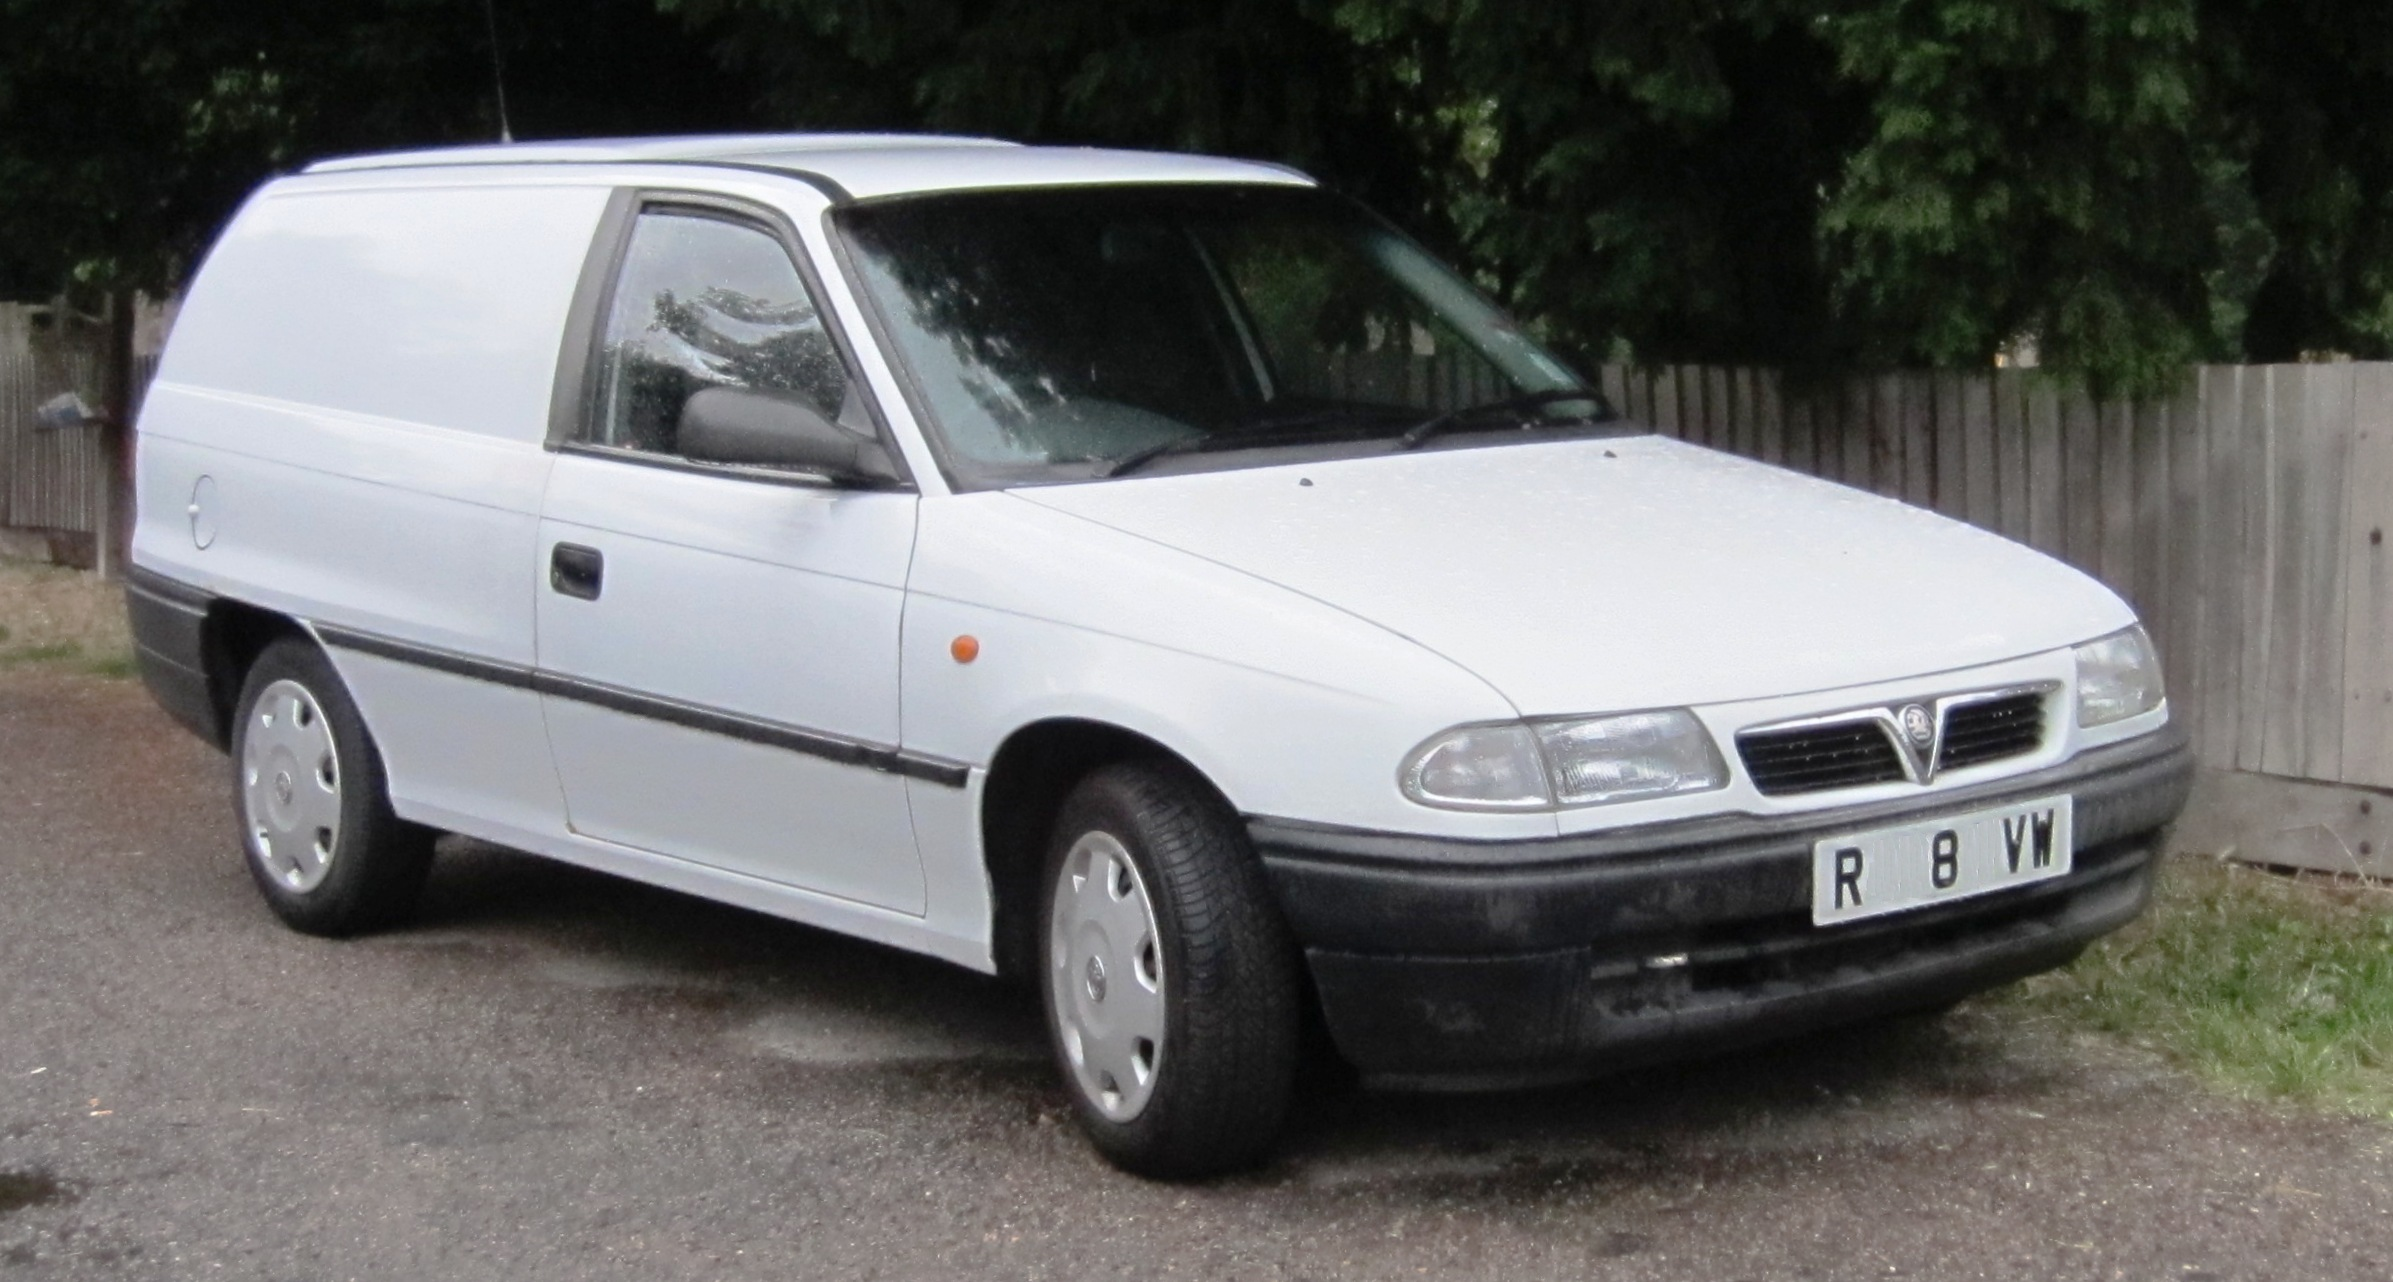 The original Astravan, based on the Kadett E, had been branded for the UK  as a Bedford, but the panel van derivative of the Astra F came to Britain  with ...